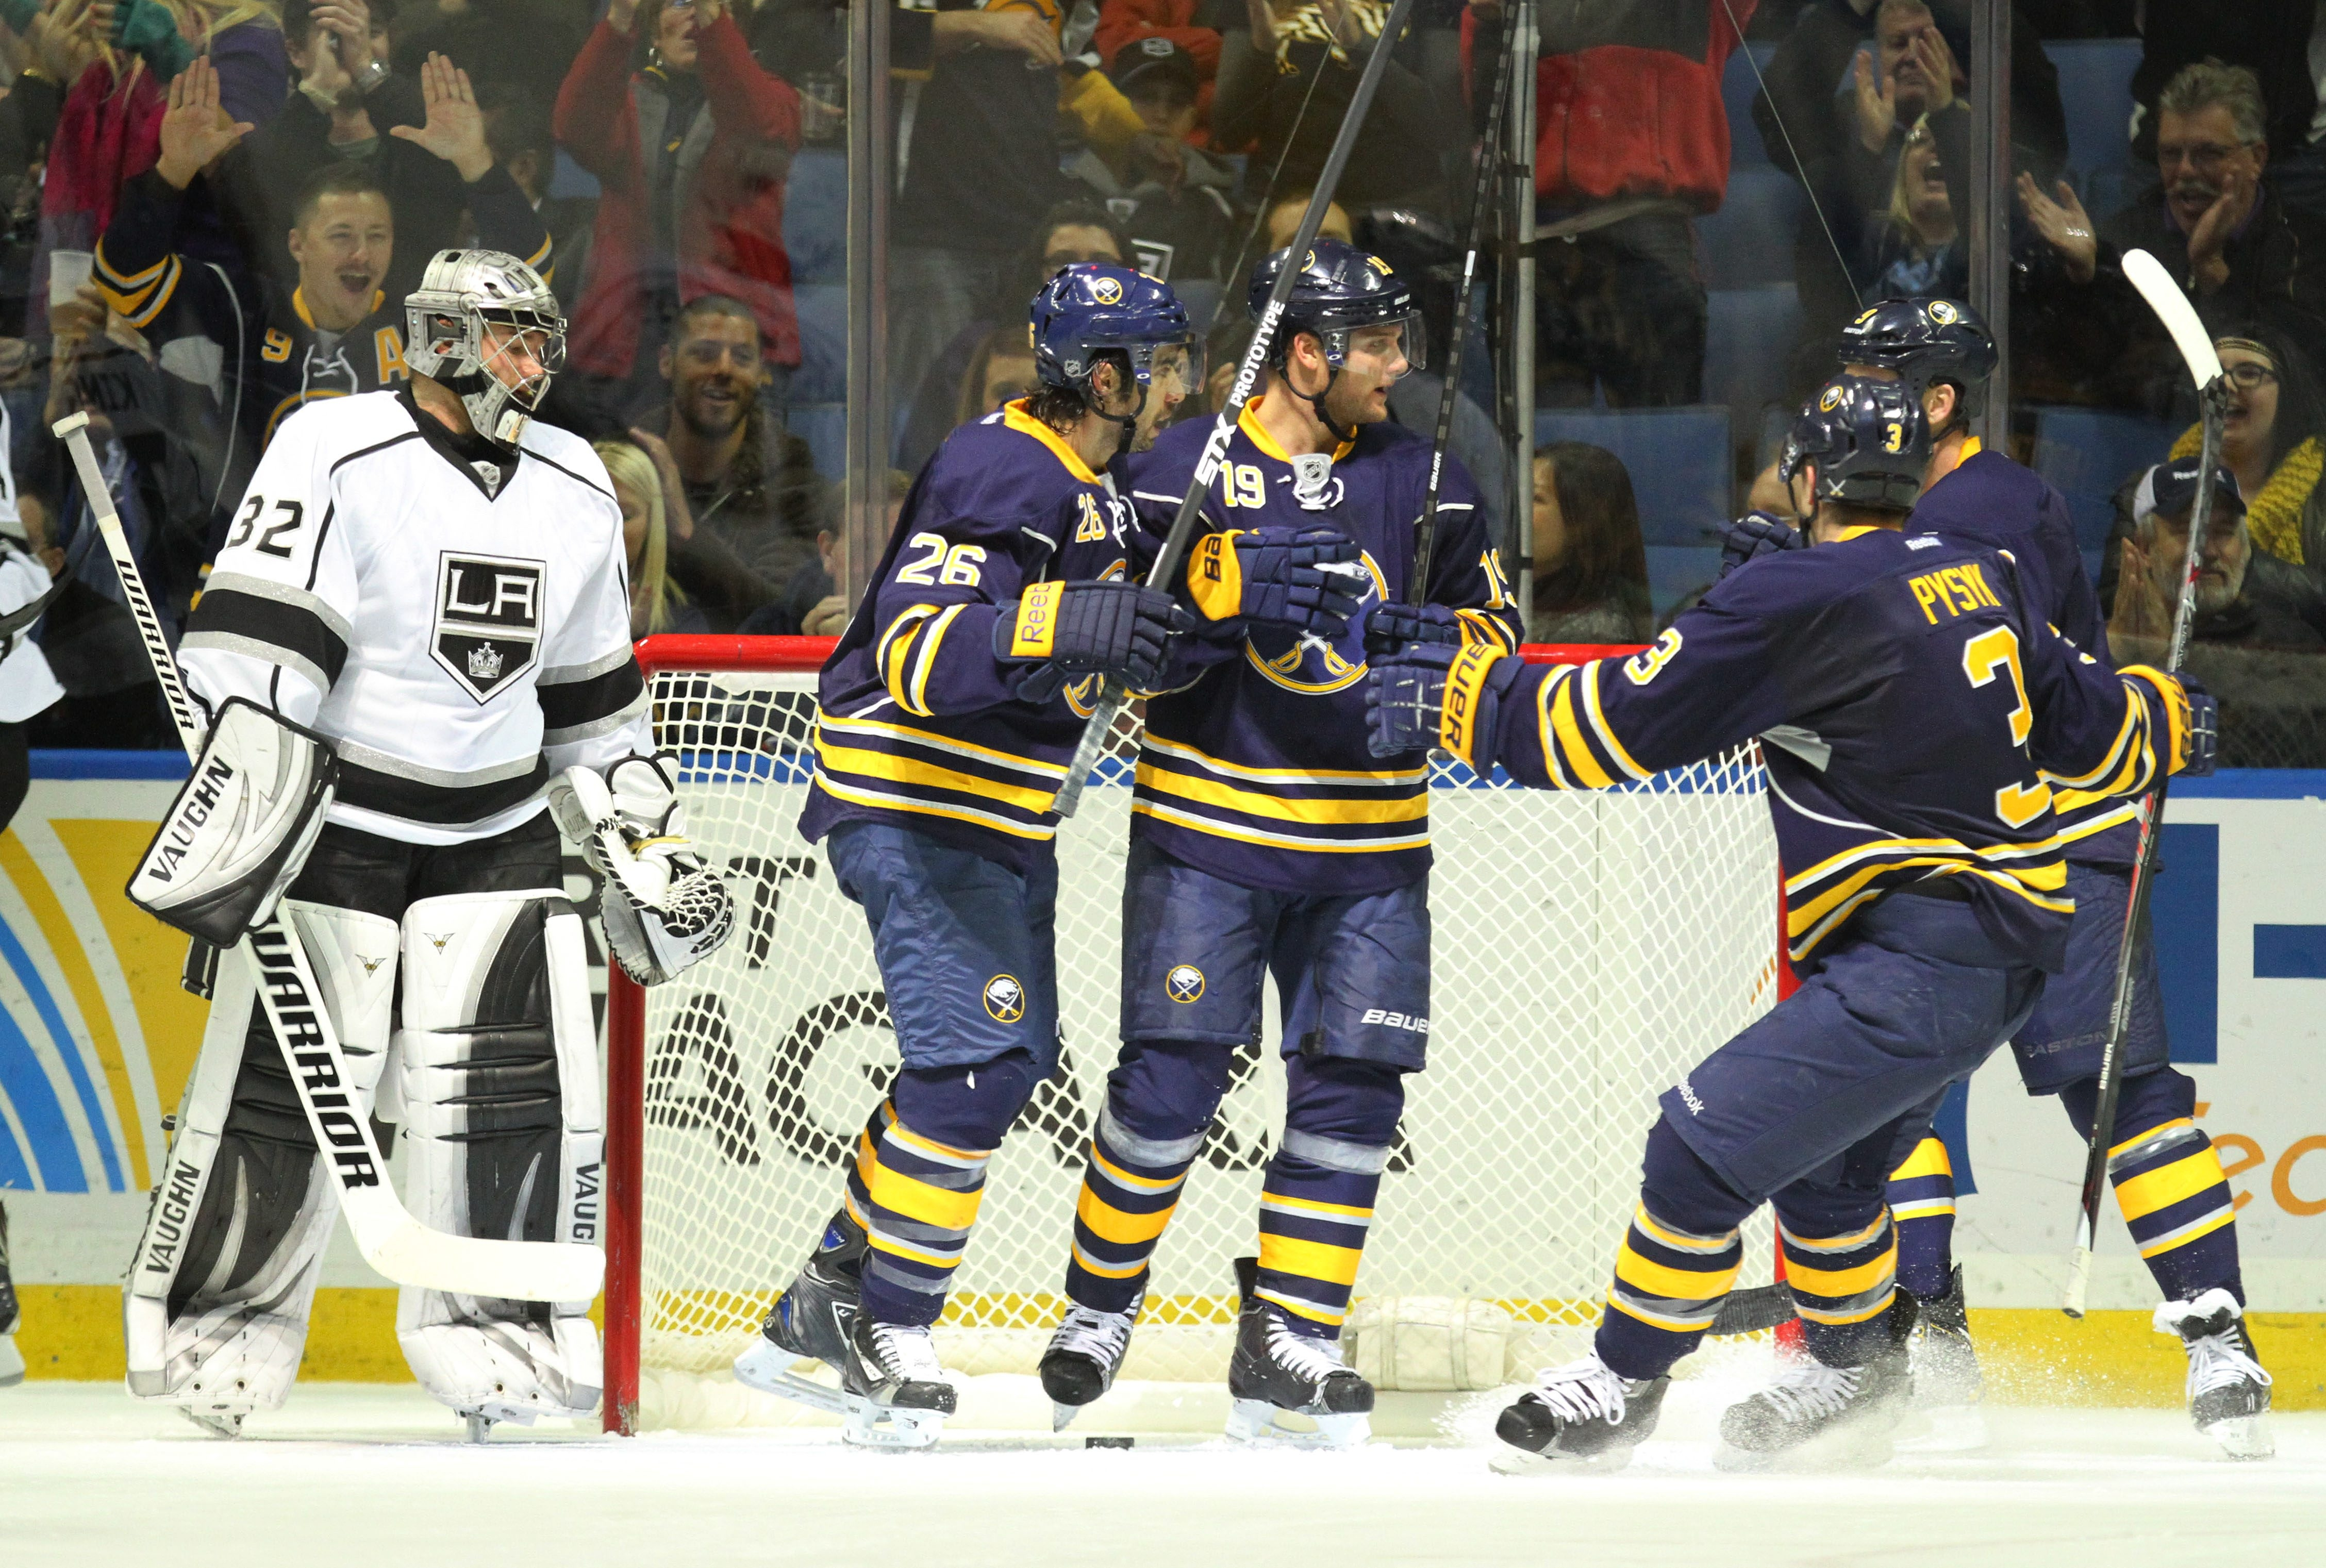 The Sabres' Cody Hodgson celebrates his first goal of the game with his teammates during Tuesday's game against Los Angeles at First Niagara Center.  (Mark Mulville/Buffalo News)